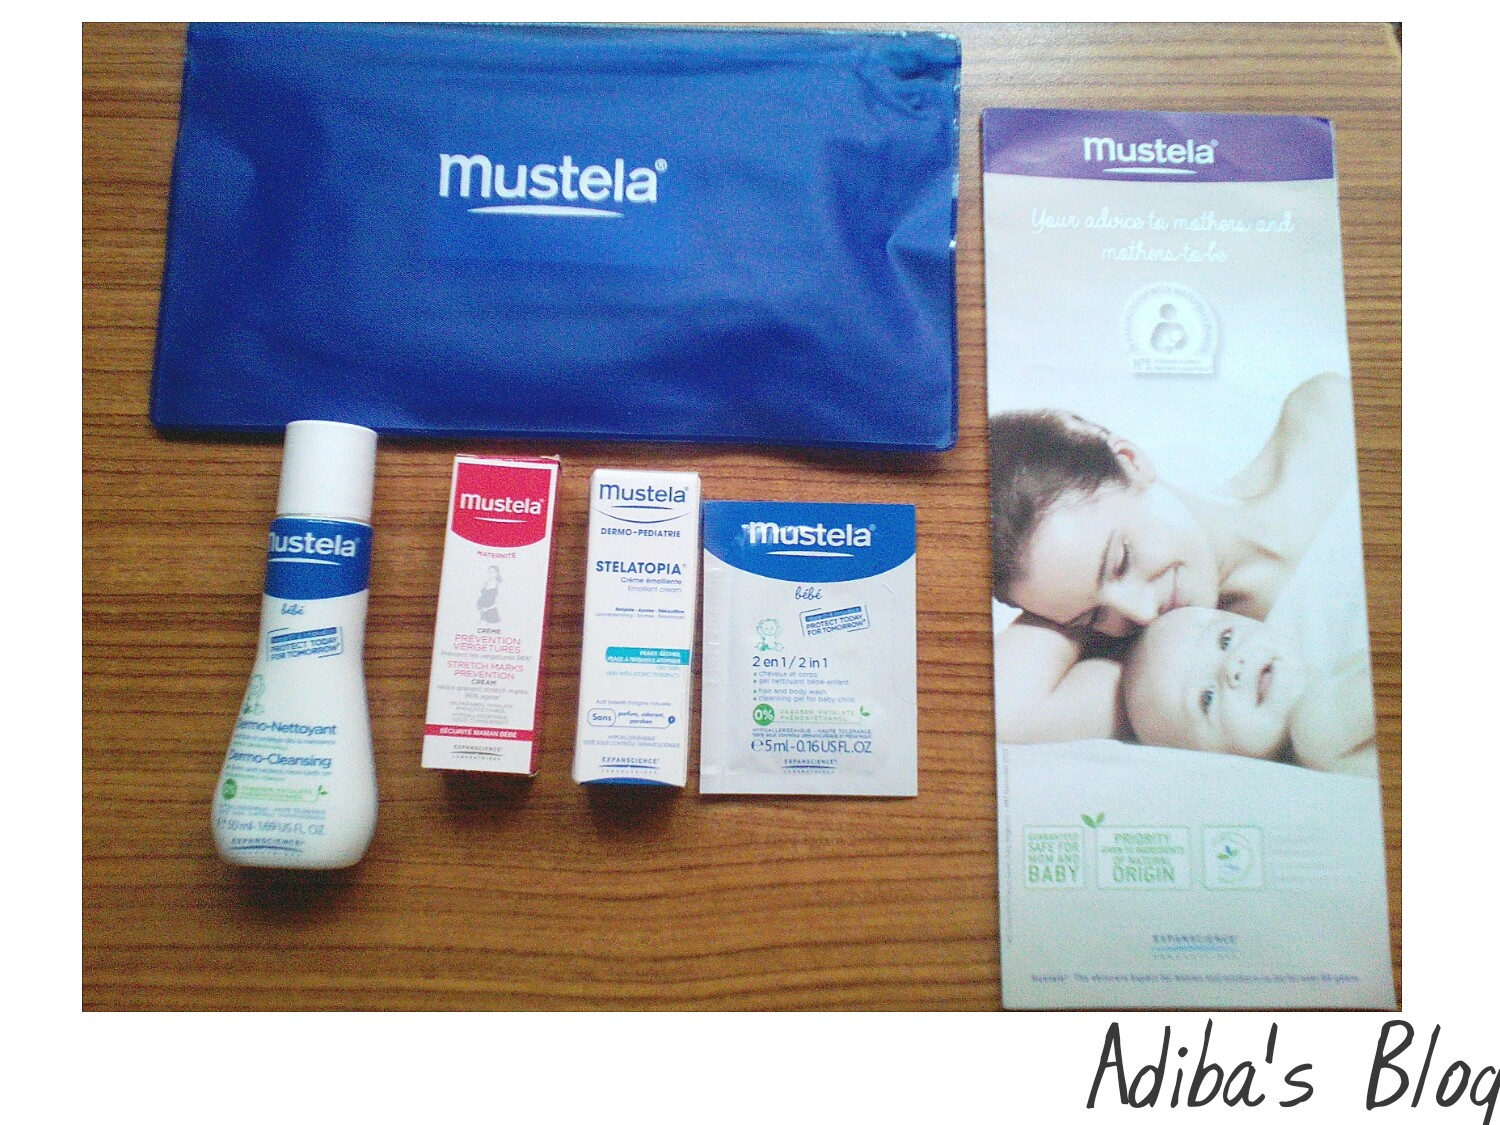 Review Mustela Baby And Mother Care Products Best For New Stelatopia Emollient Cream Dermo Nettoyant Cleansing